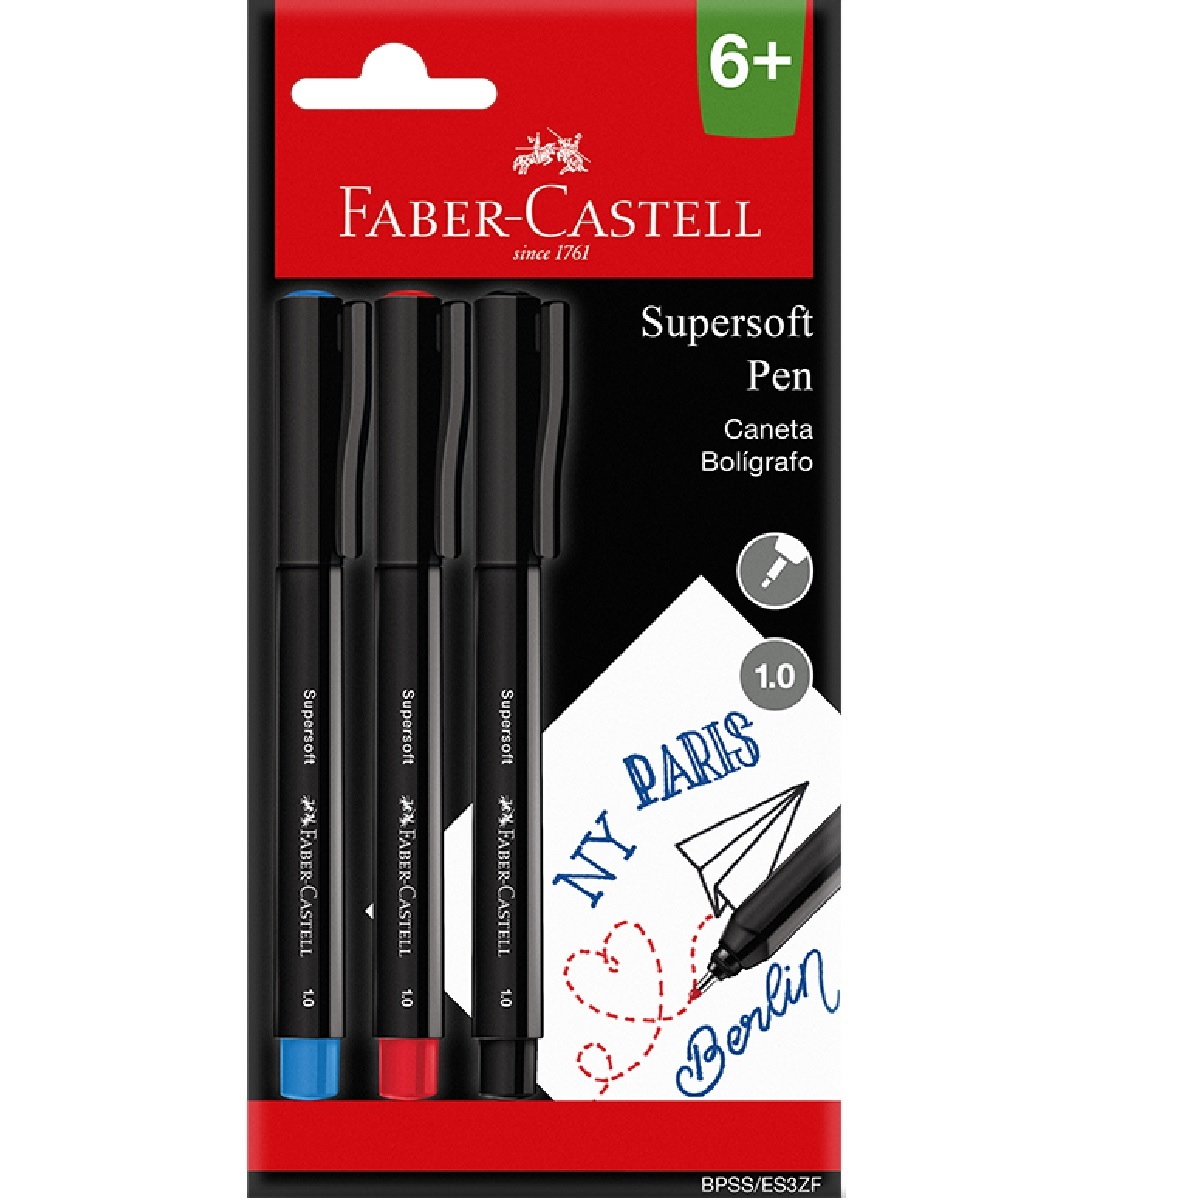 Caneta SuperSoft Pen 1.0mm Faber Castell 3 cores